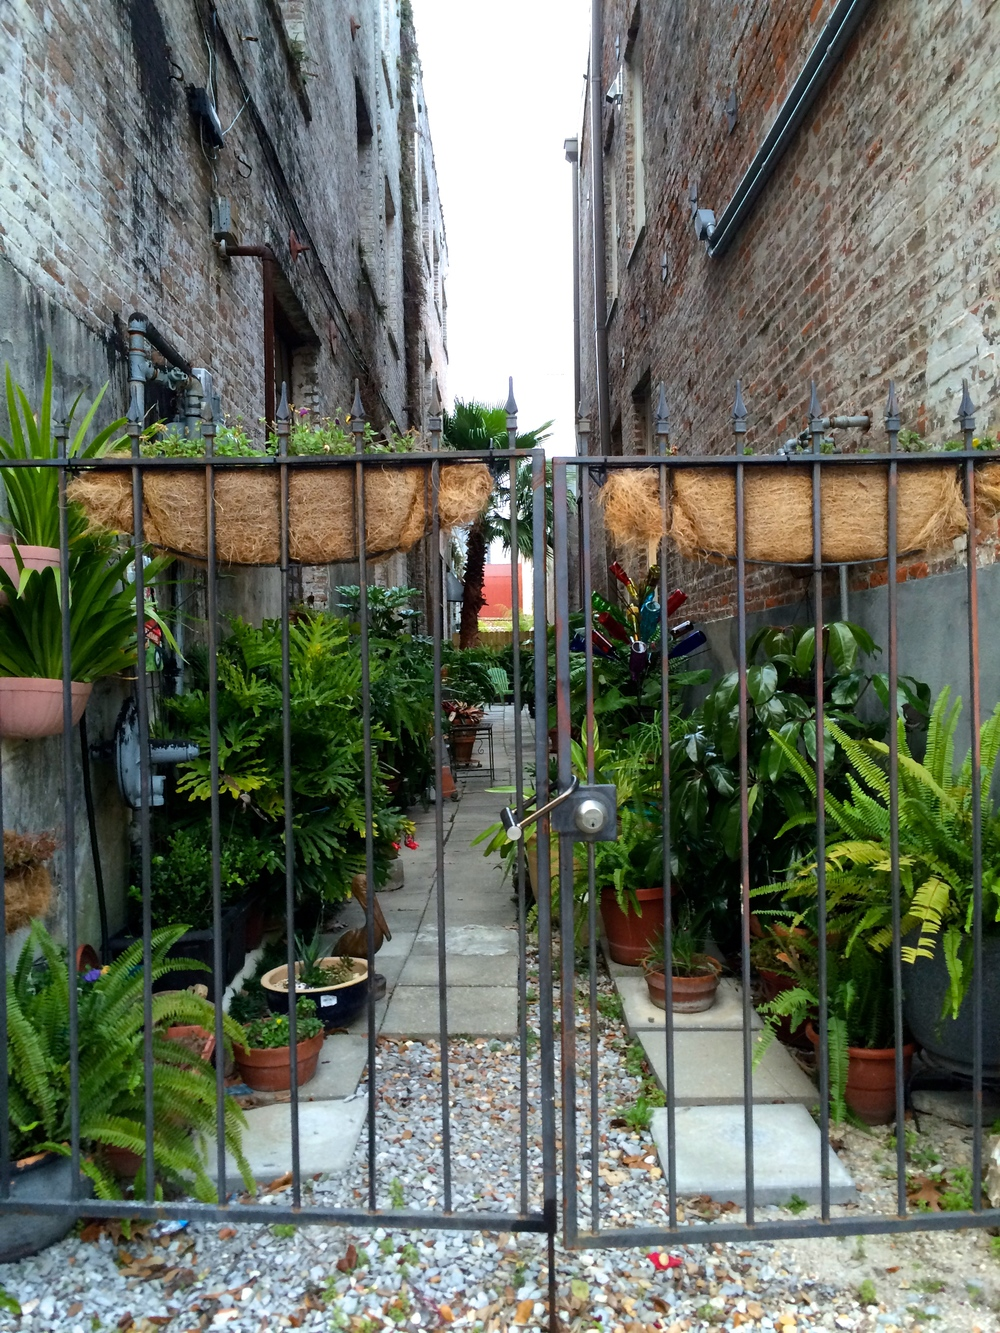 a green alleyway next to avery fine perfumery.